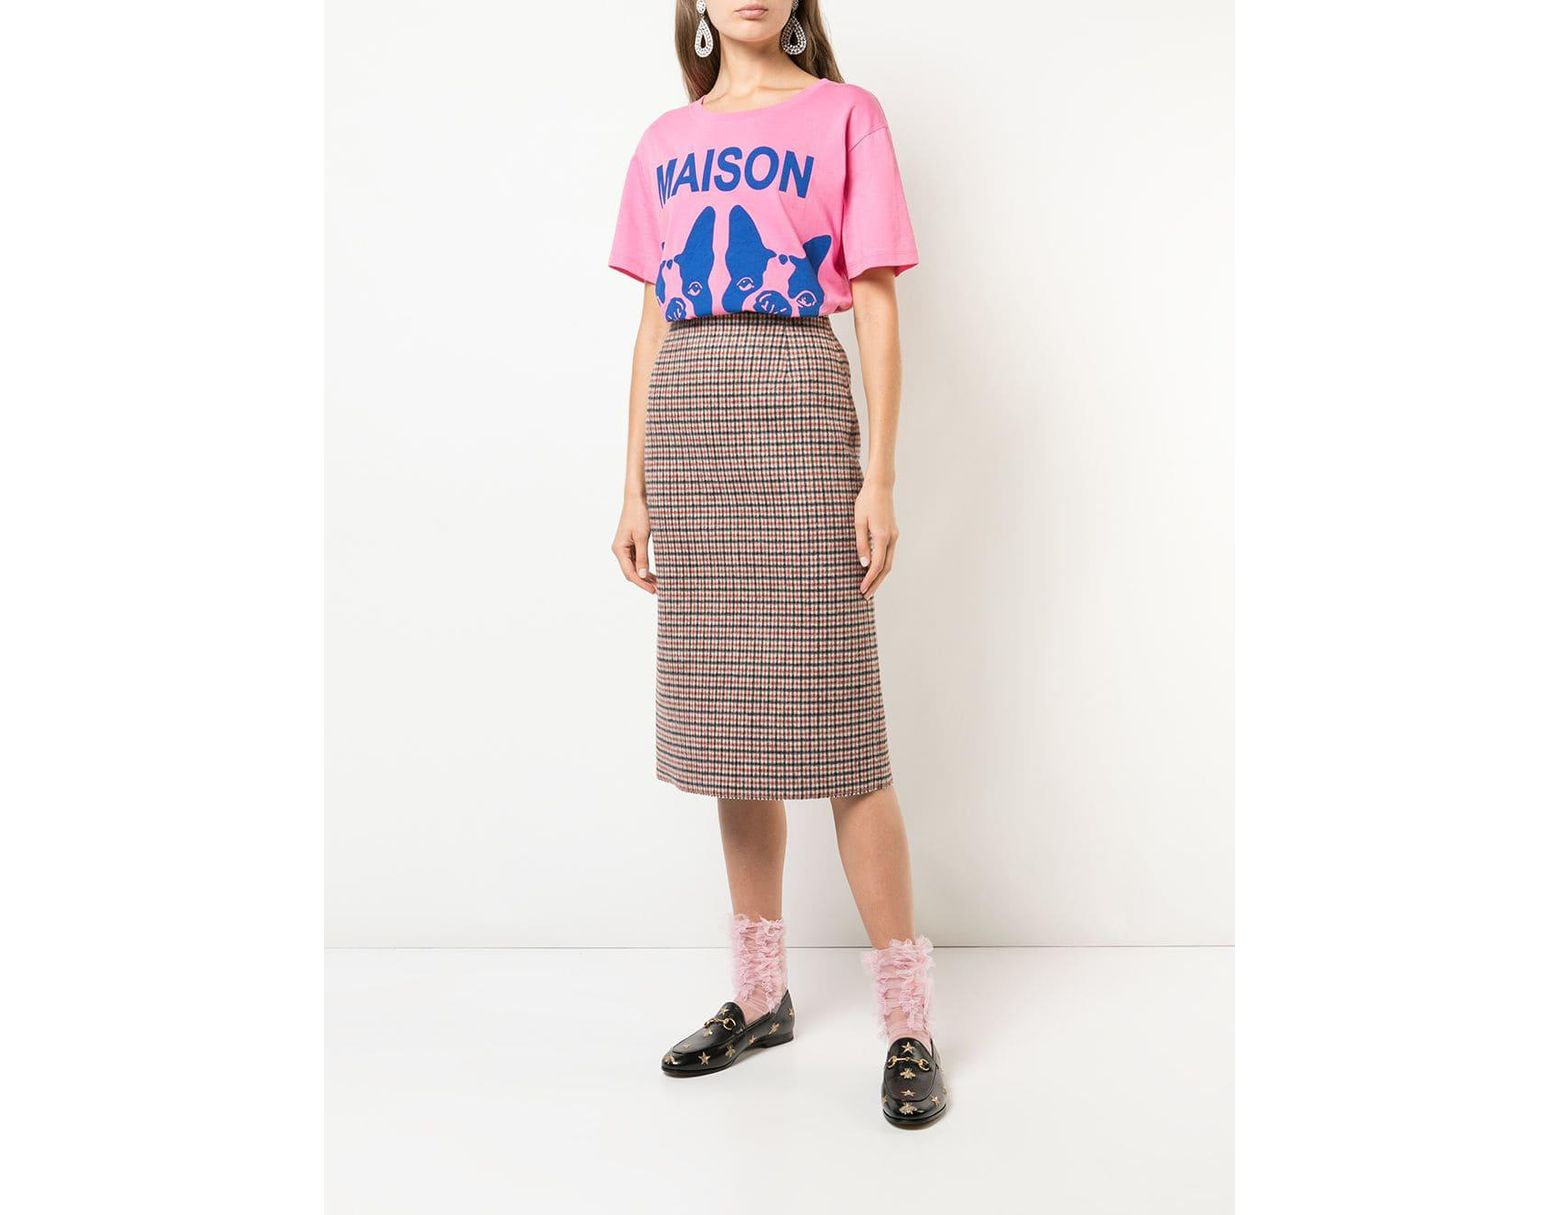 341710983cd Lyst - Gucci French Bulldog Oversized T-shirt in Pink